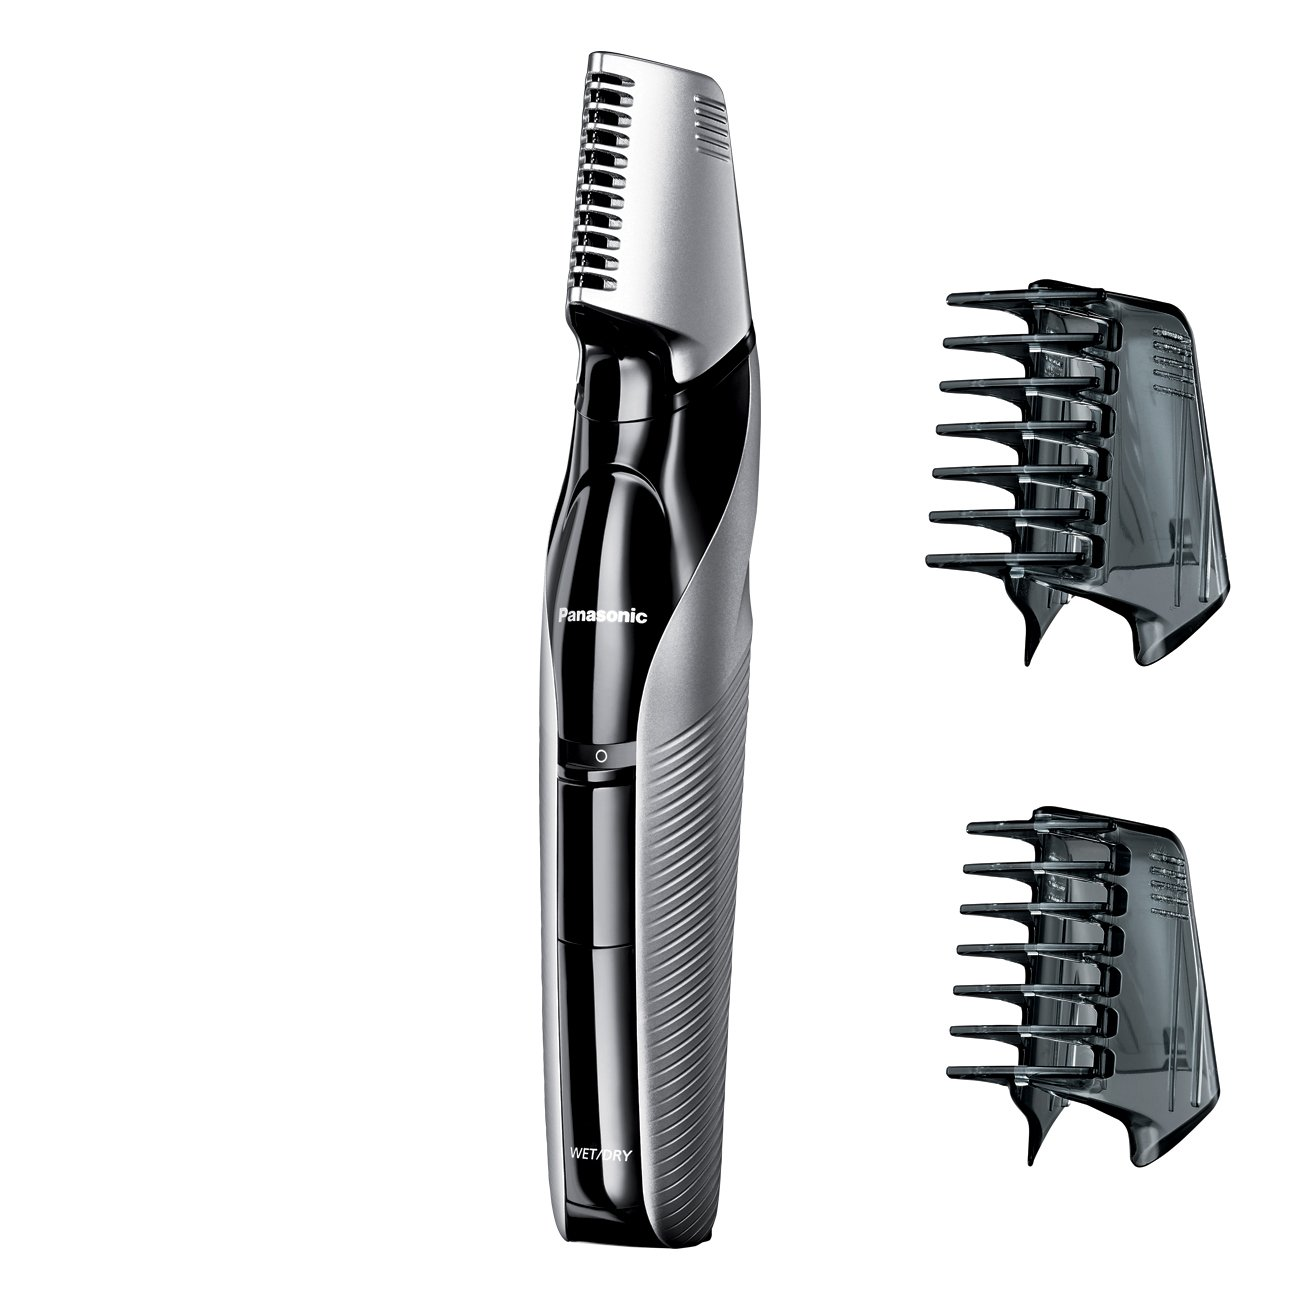 Panasonic Men's Cordless Electric Body Trimmer Panasonic - Beauty ER-GK60-S